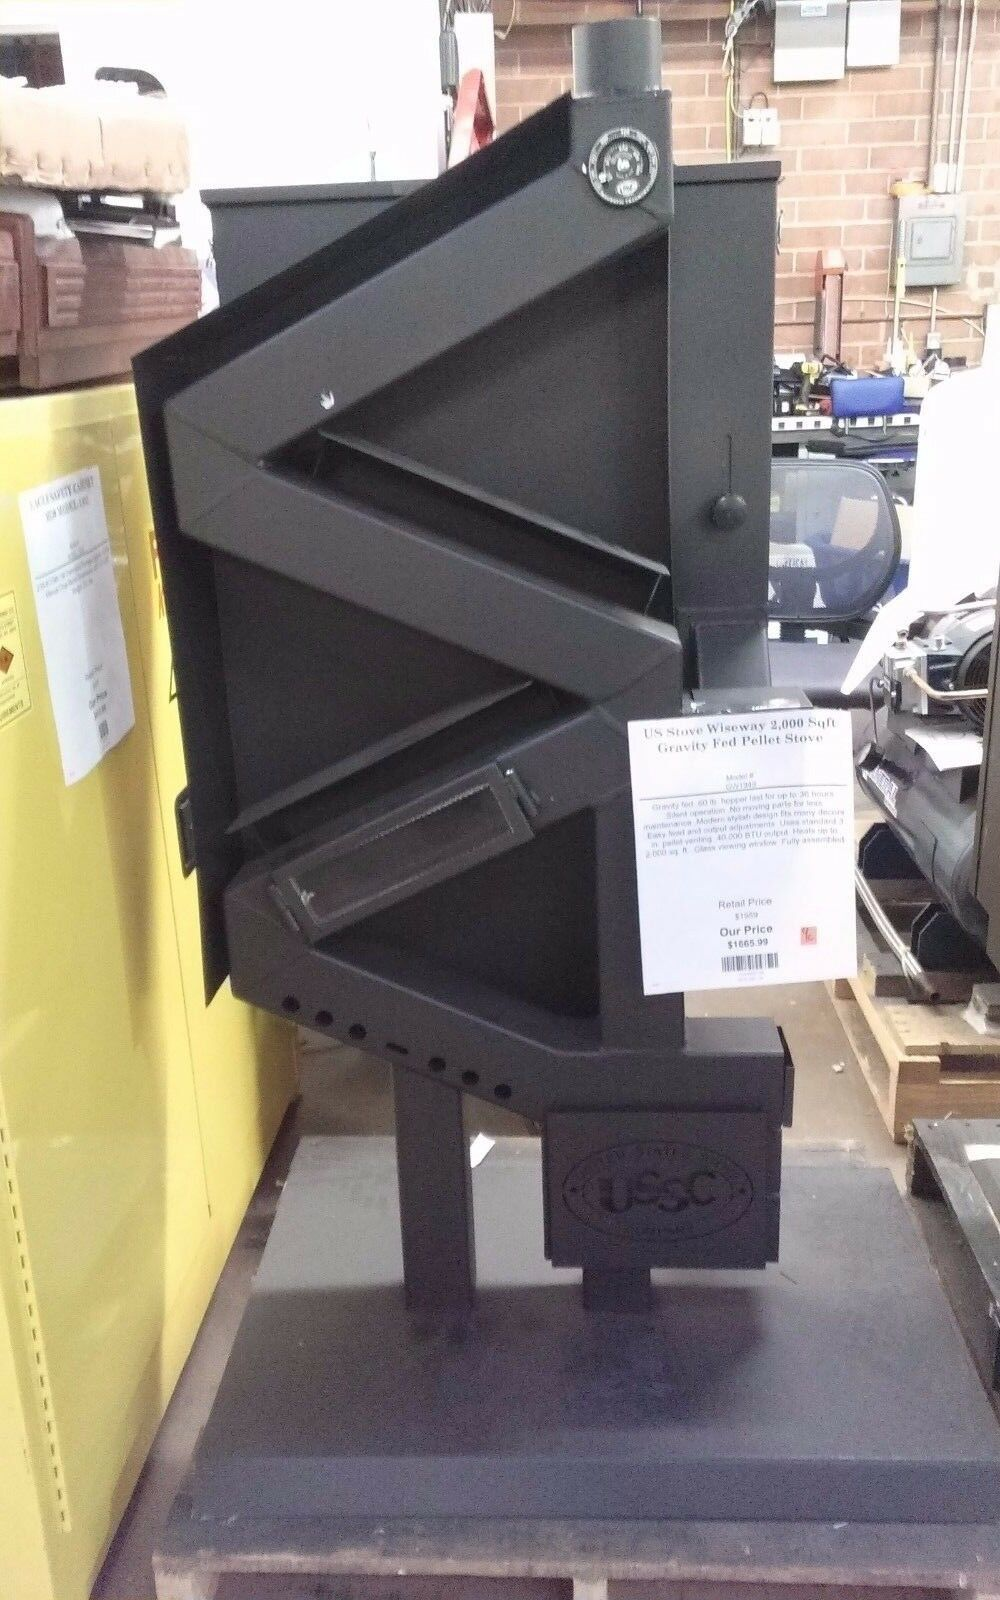 US Stove Company 2000-sq ft Gravity Fed Pellet Stove  GW1949